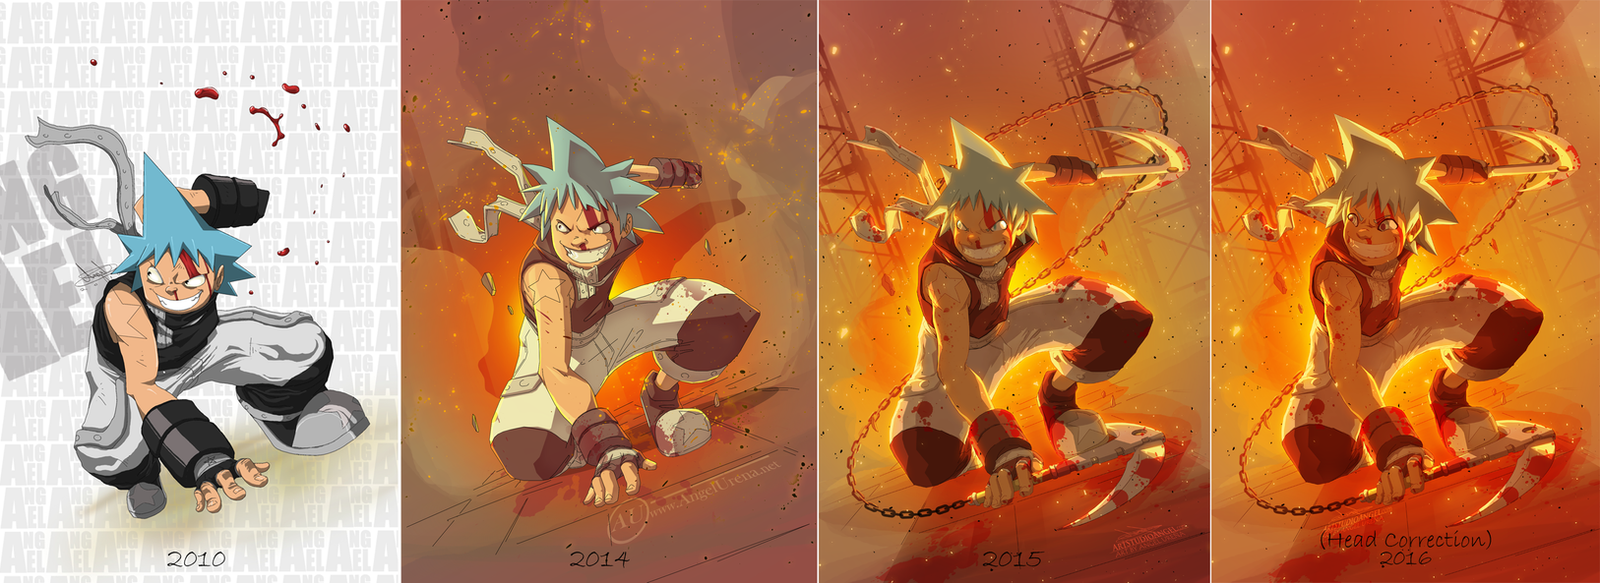 BlackStar SoulEater (comparison) by ArtStudioAngel